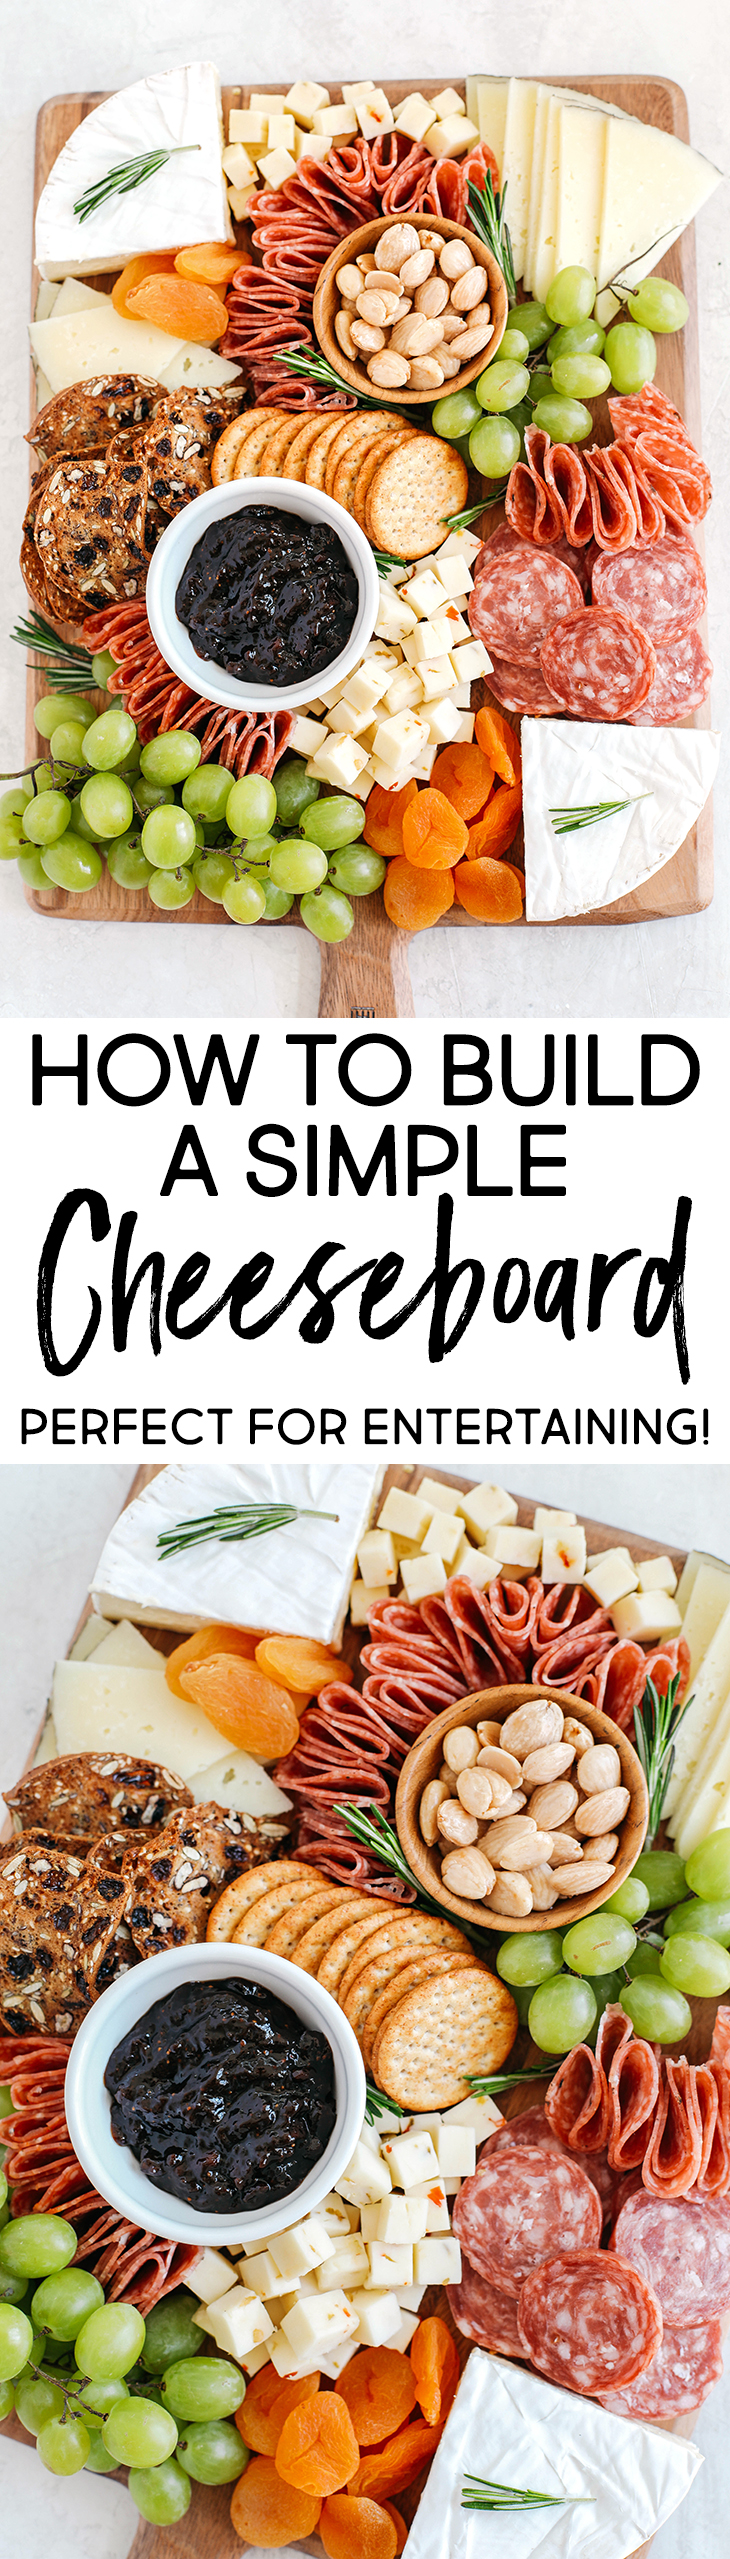 My favorite tips and tricks for building the perfect cheeseboard with all your favorite charcuterie that is simple, beautiful and made in just minutes!  Perfect for everyday entertaining!